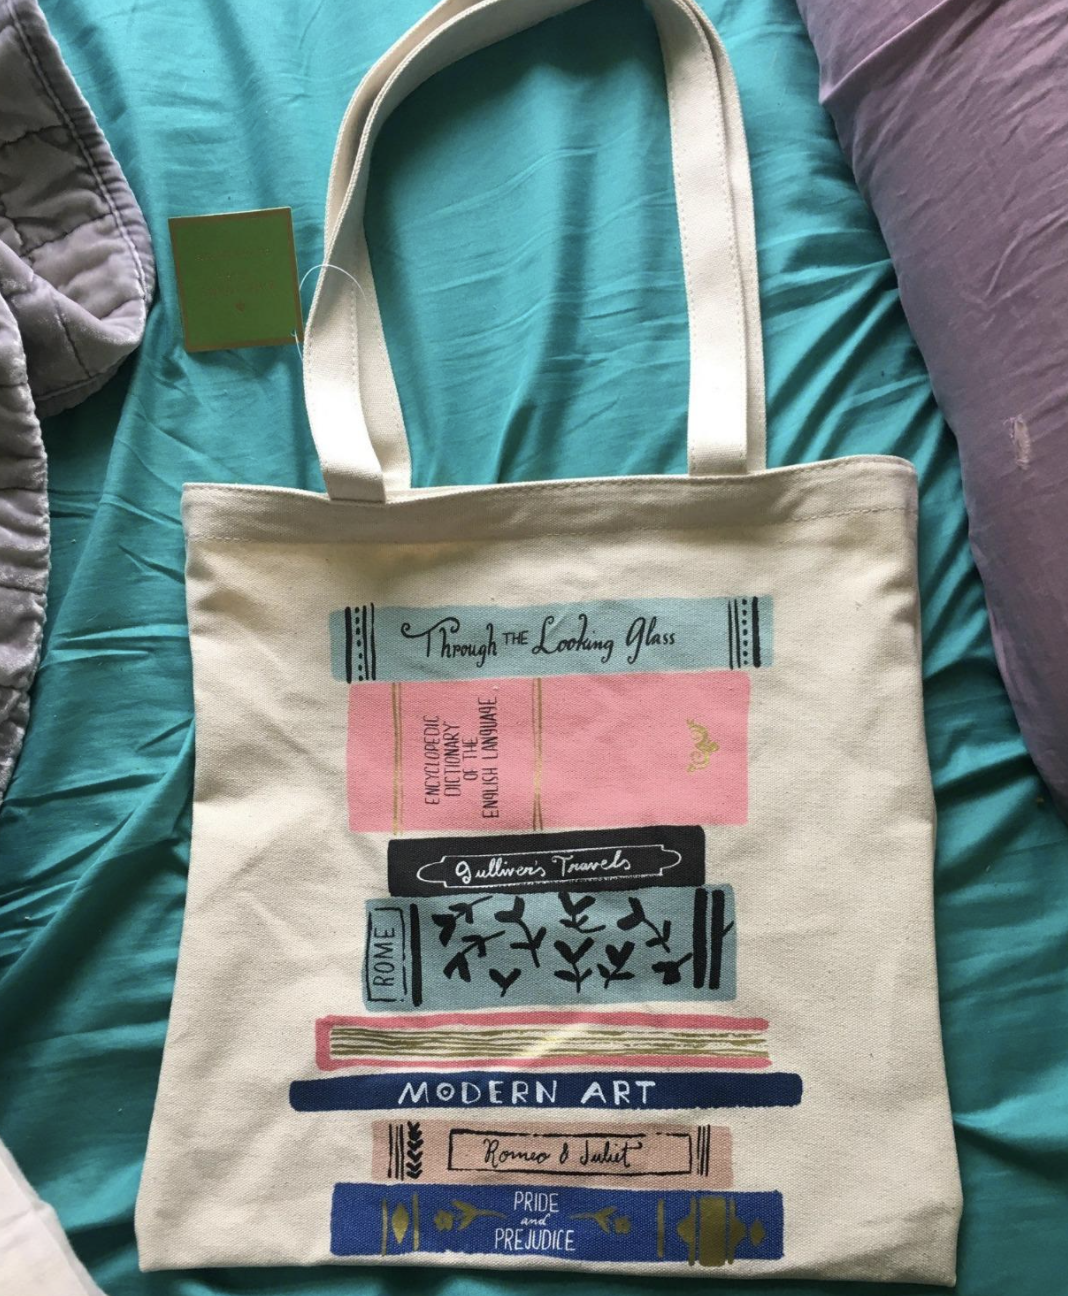 a reviewer photo of the tote bag with various kinds of books printed on the outside with classics like romeo & juliet and pride & prejudice